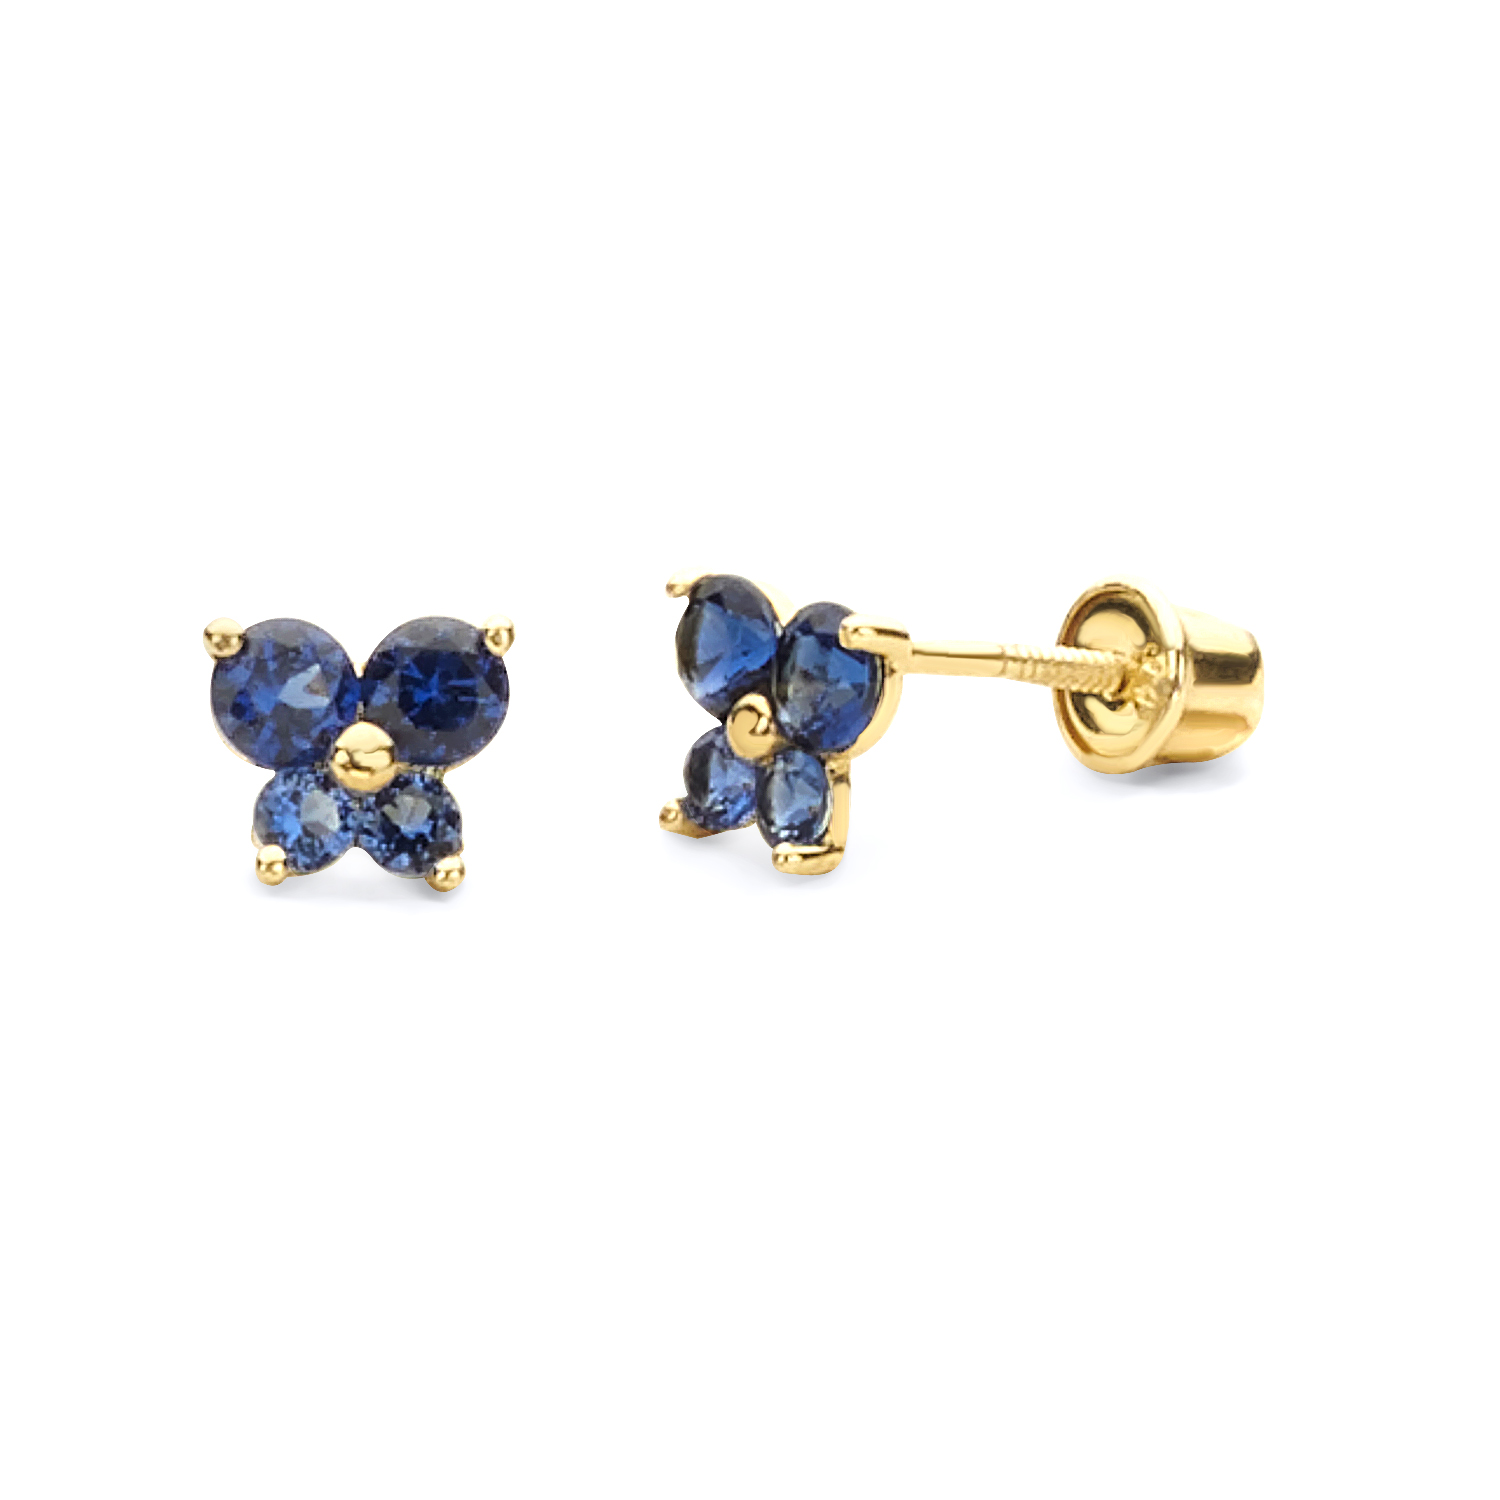 Wellingsale 14K Yellow Gold Polished Flower Birth CZ Cubic Zirconia Stone Stud Earrings With Screw Back May